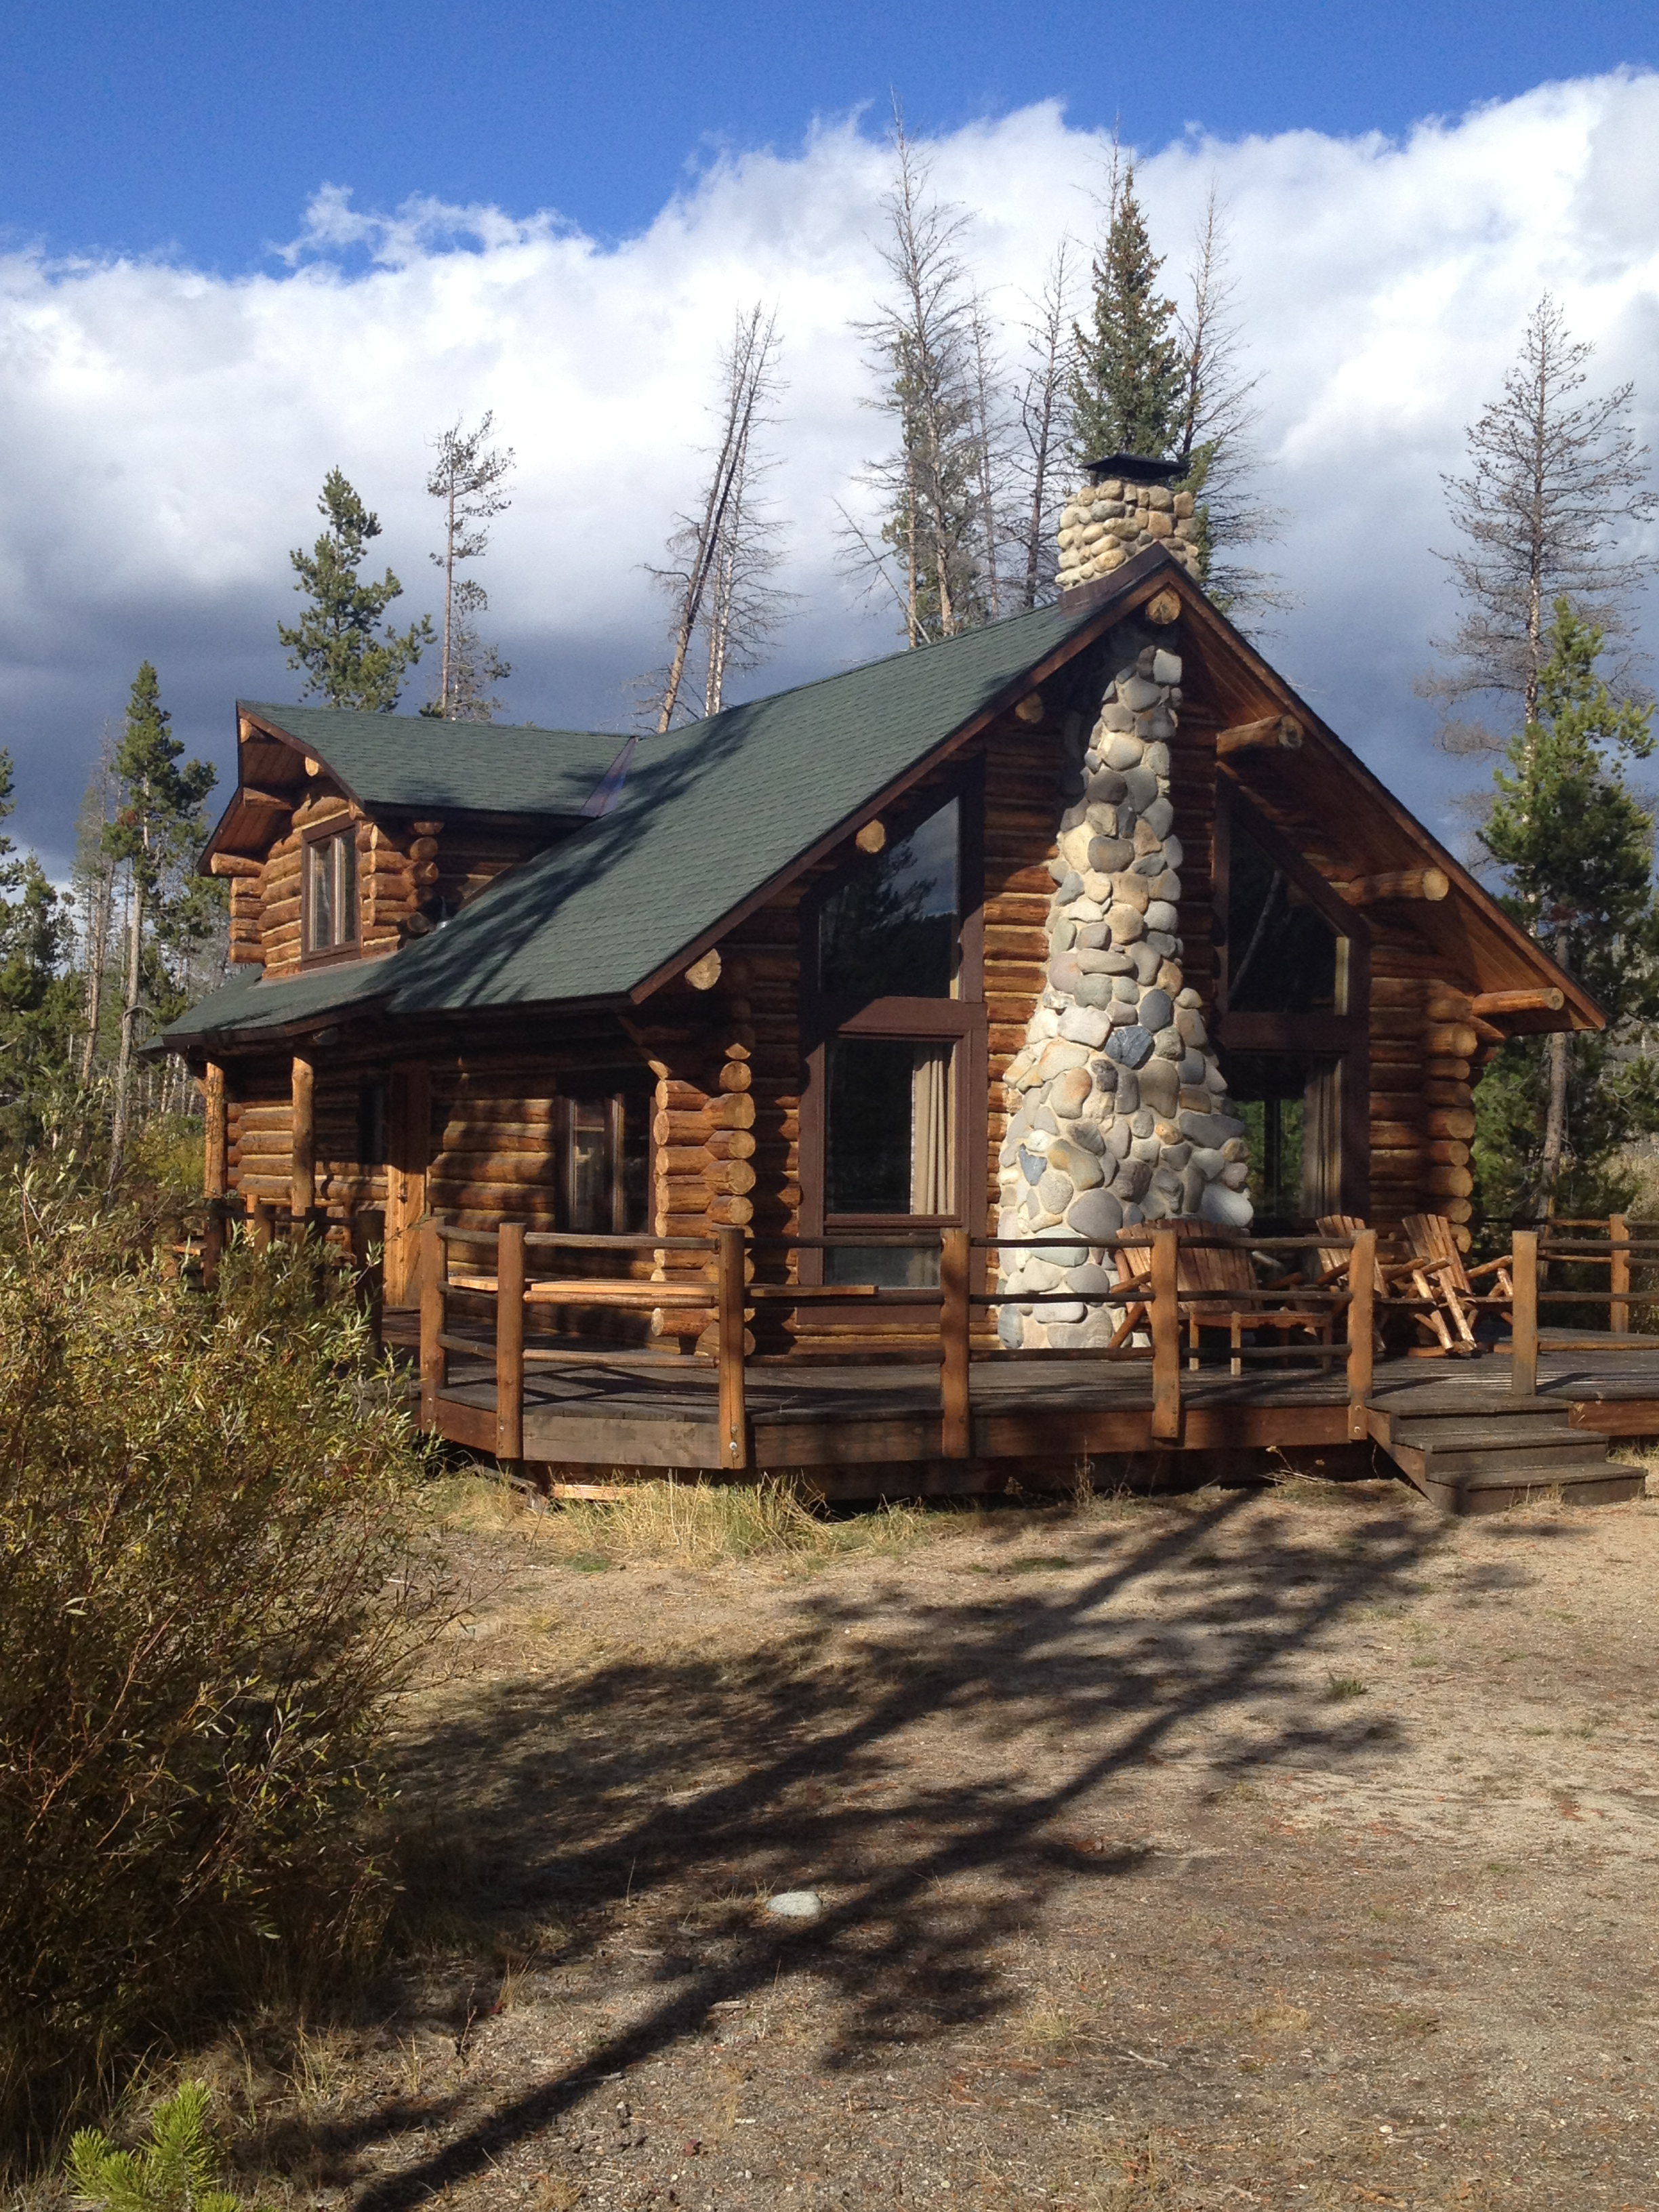 hood montana rental rent national mt cabin forest rentals cheap romantic cabins meadows for